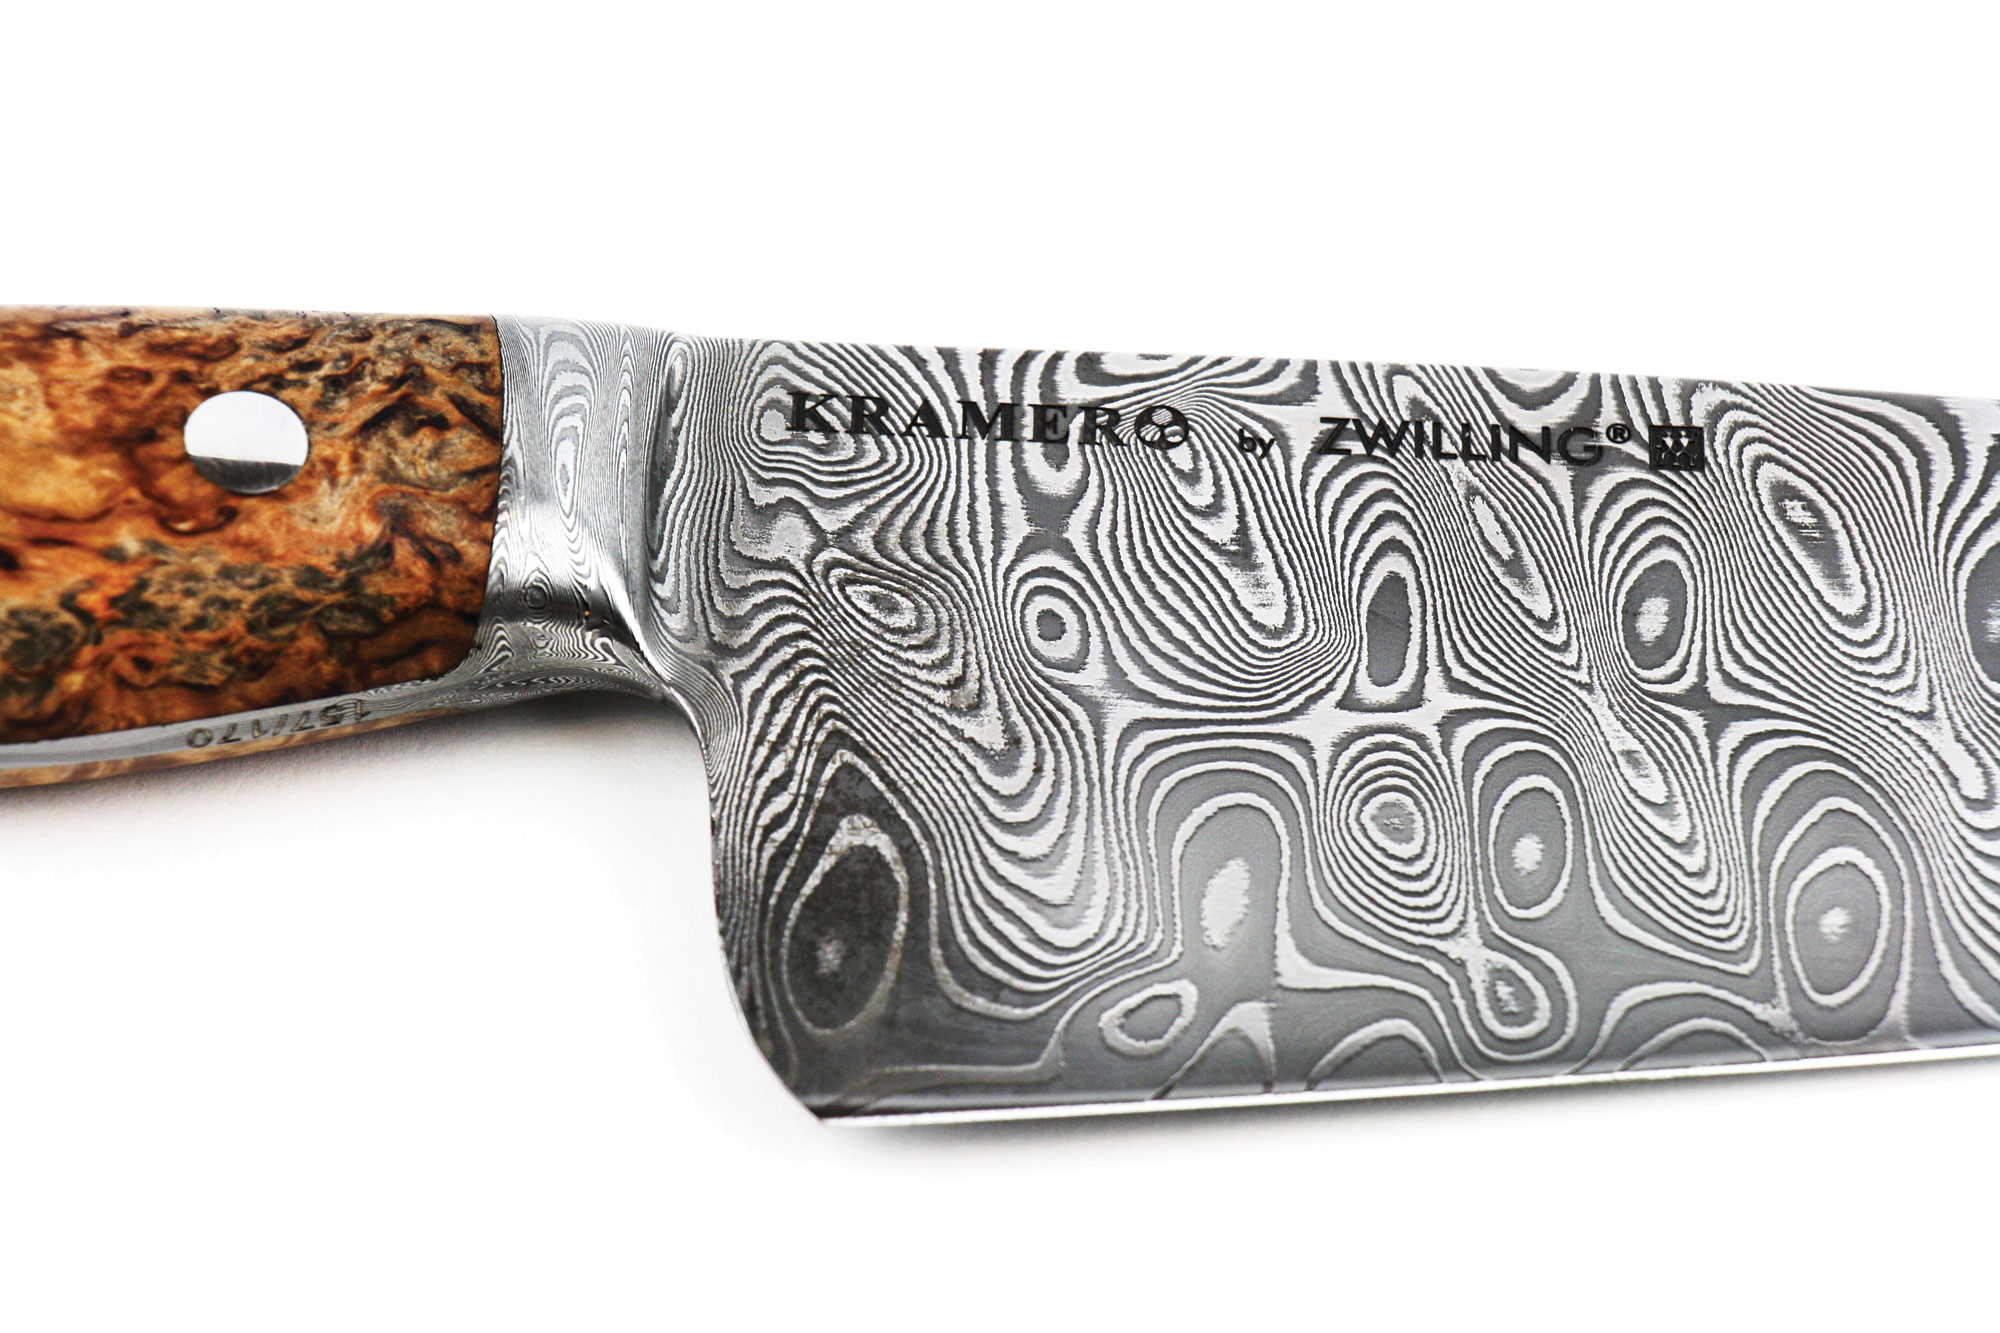 Kramer By Zwilling Limited Edition Hand Forged Carbon